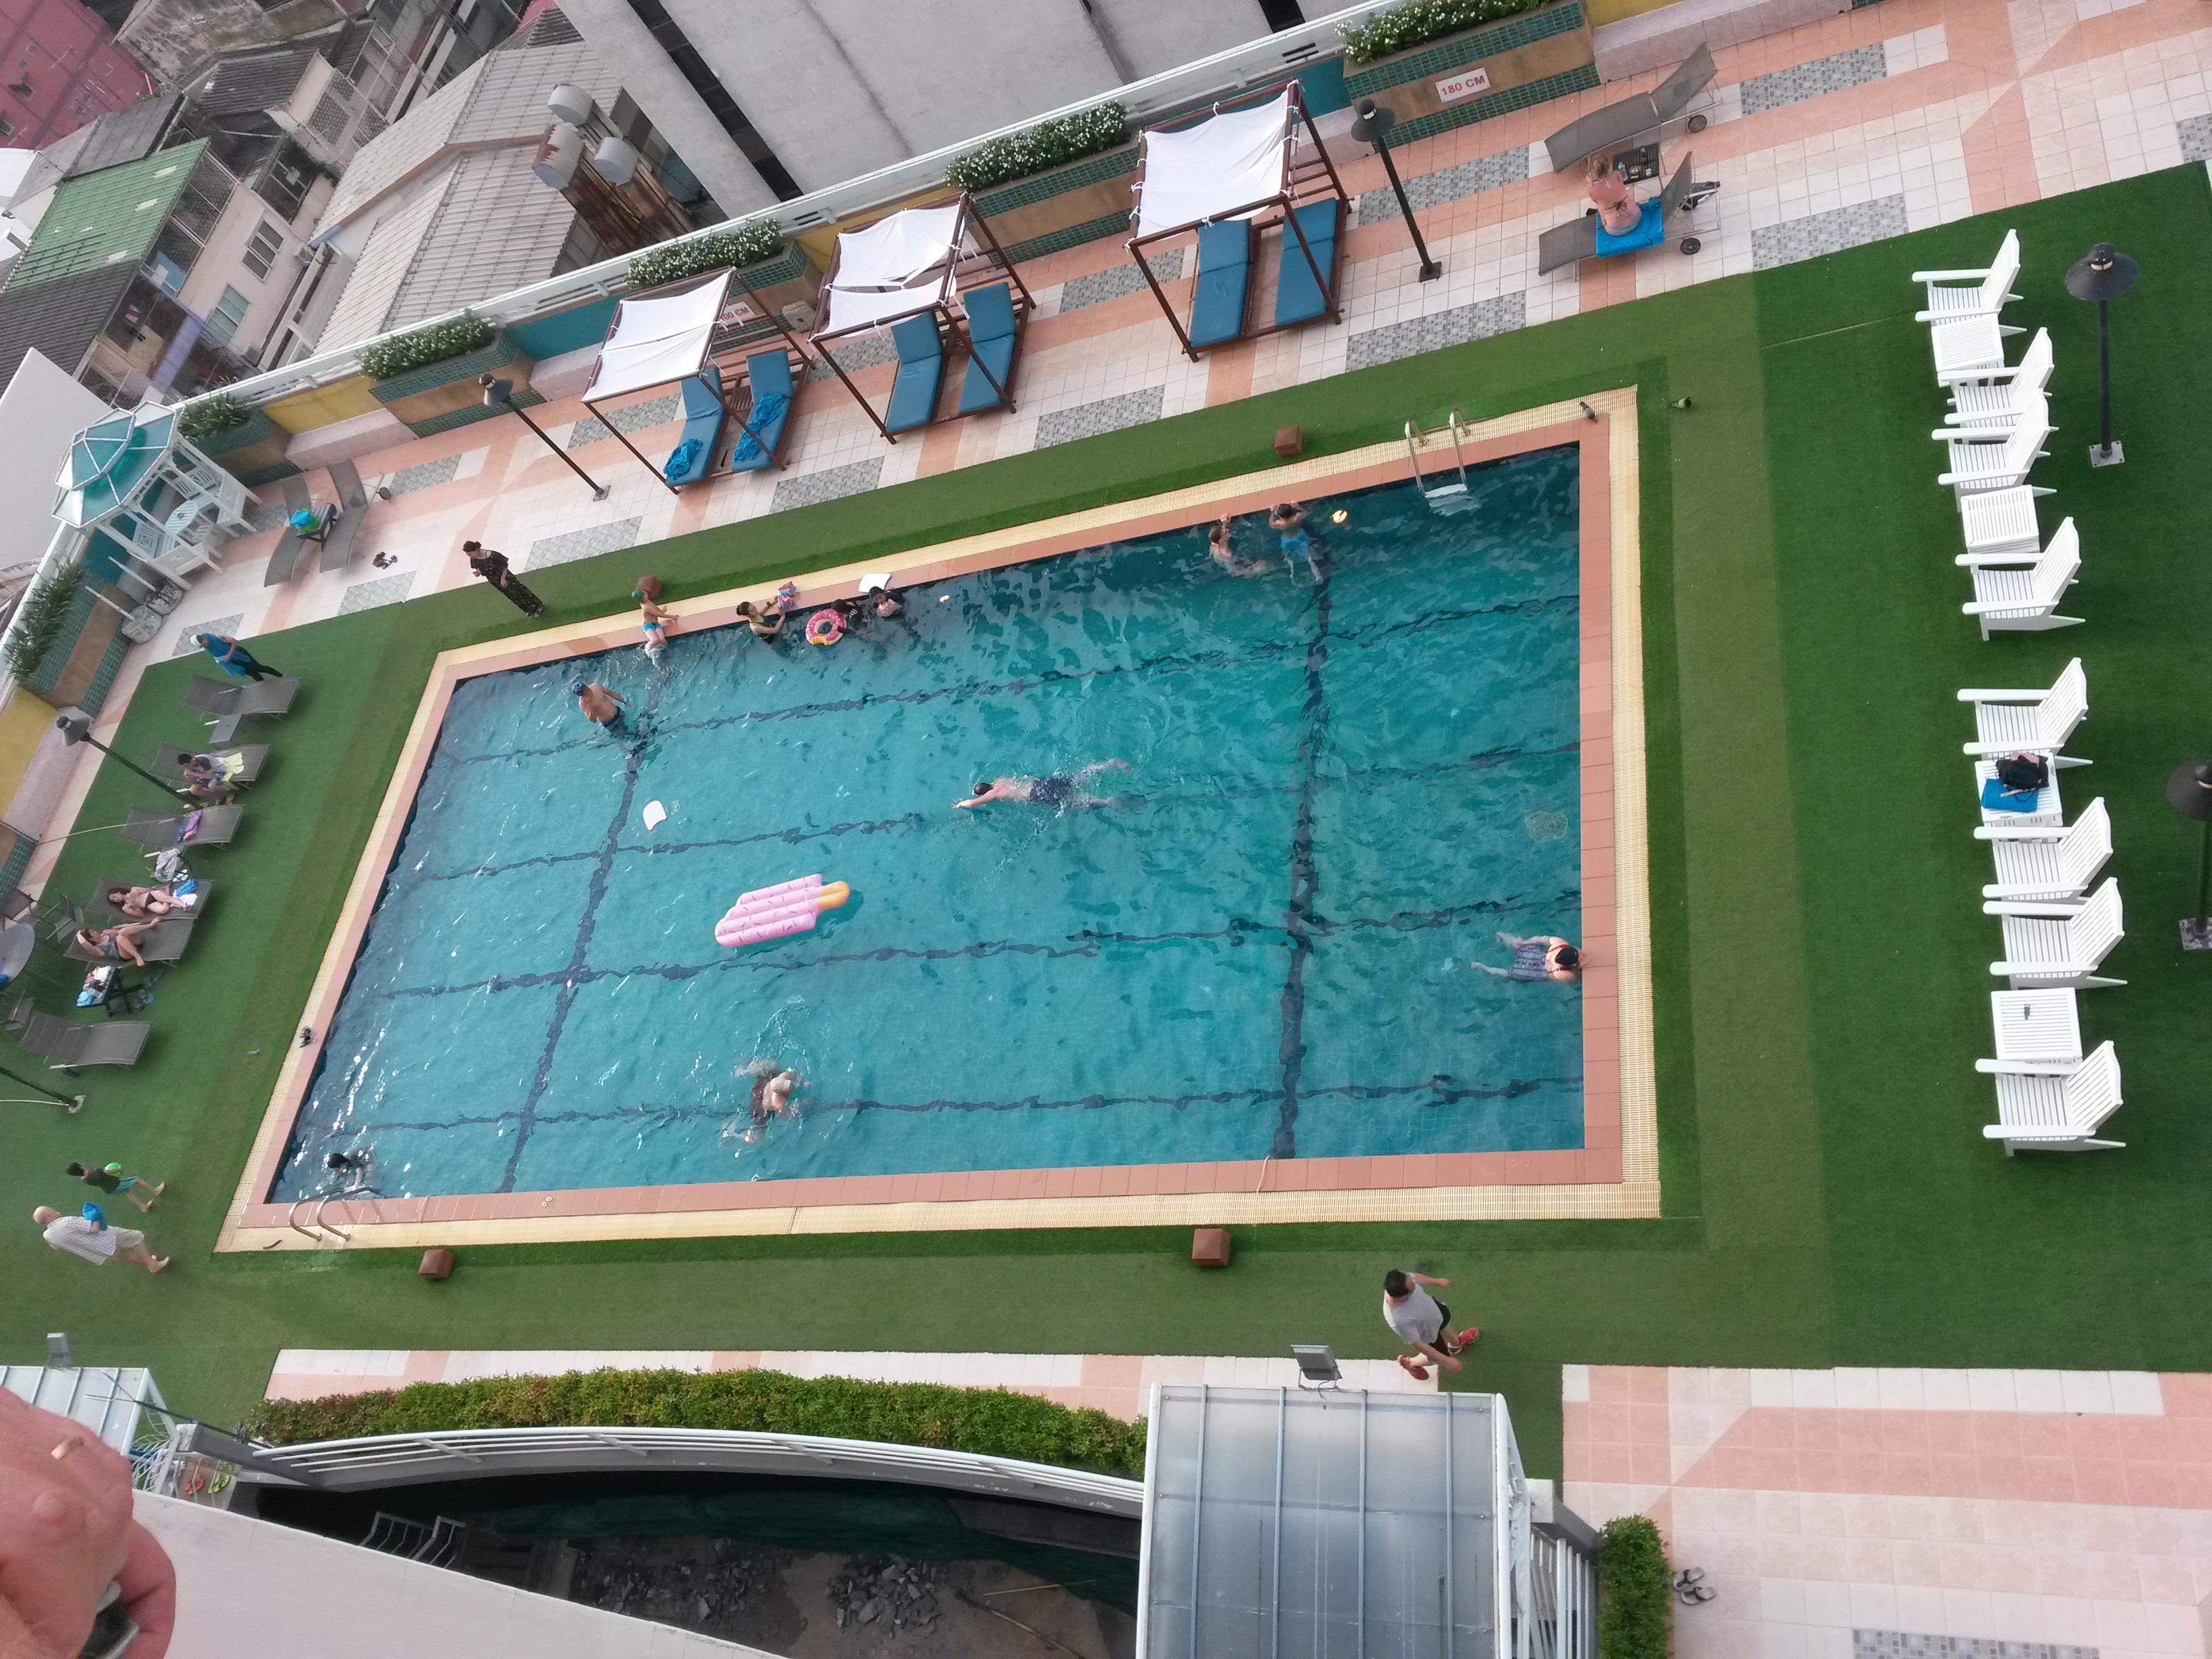 Pool view from 14th floor